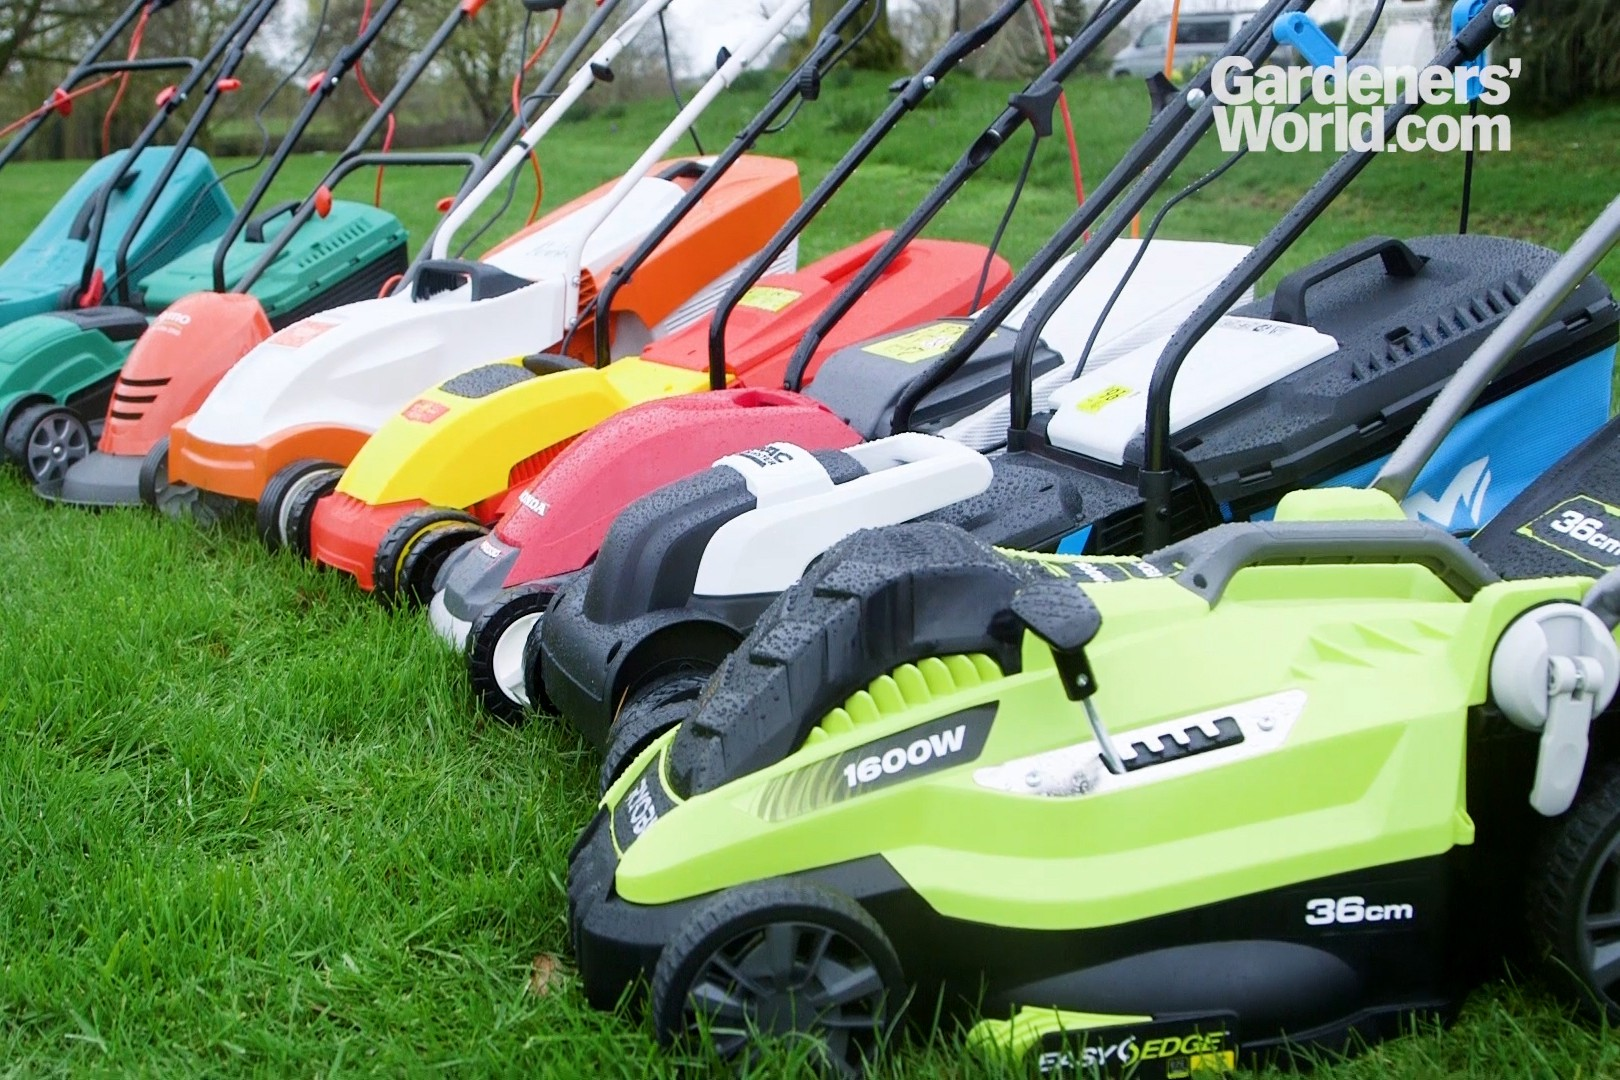 Budget lawn mowers - Buyer's Guide video